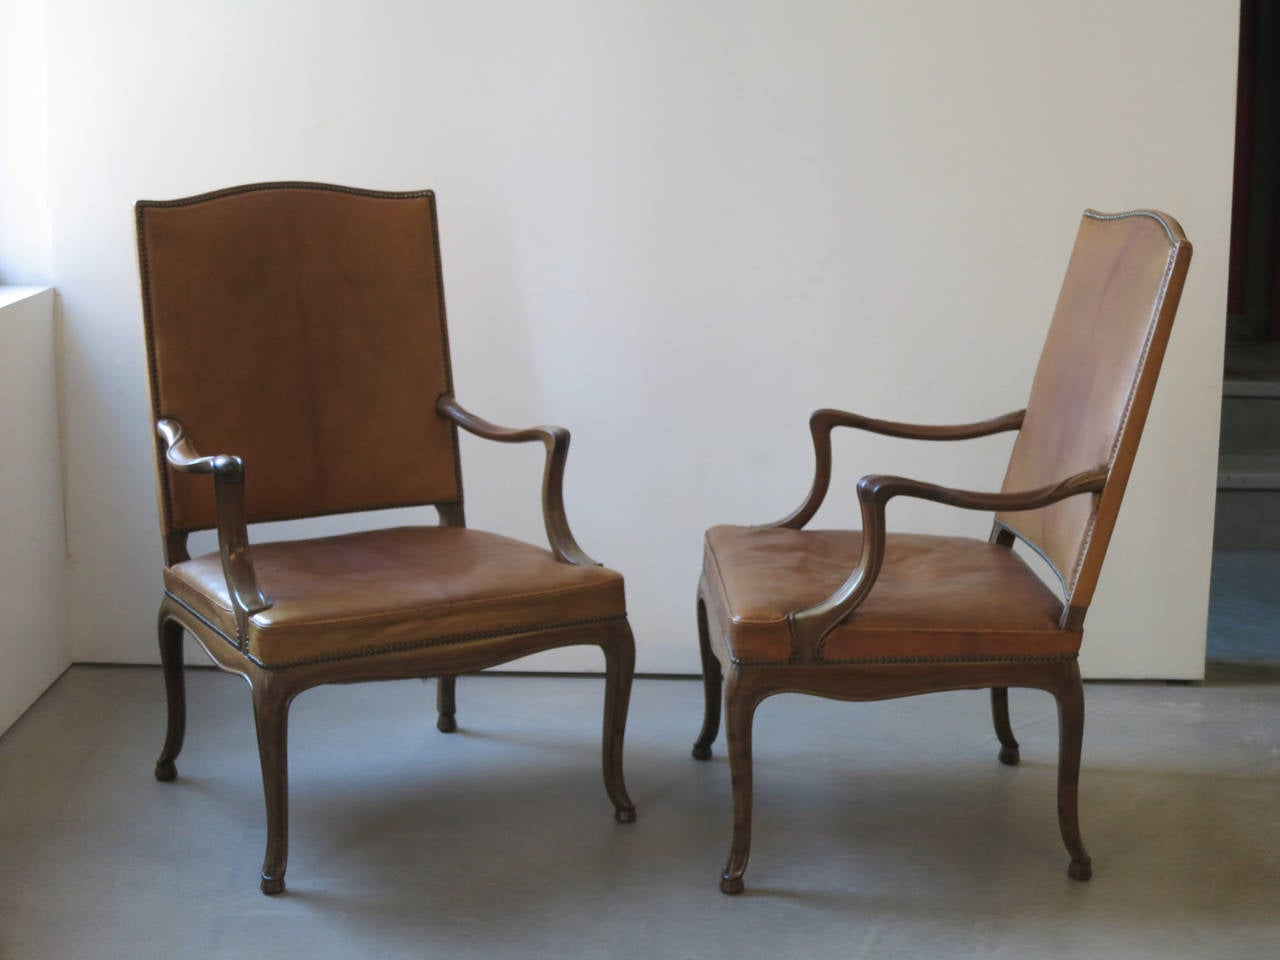 Frits Henningsen Four Large 1930s Armchairs in Danish Rococo Style. This unusual set of four large armchairs represents Frits Henningsen's modernist pared-down interpretation of Rococo style. The carving of the Cuban mahogany frames is of an